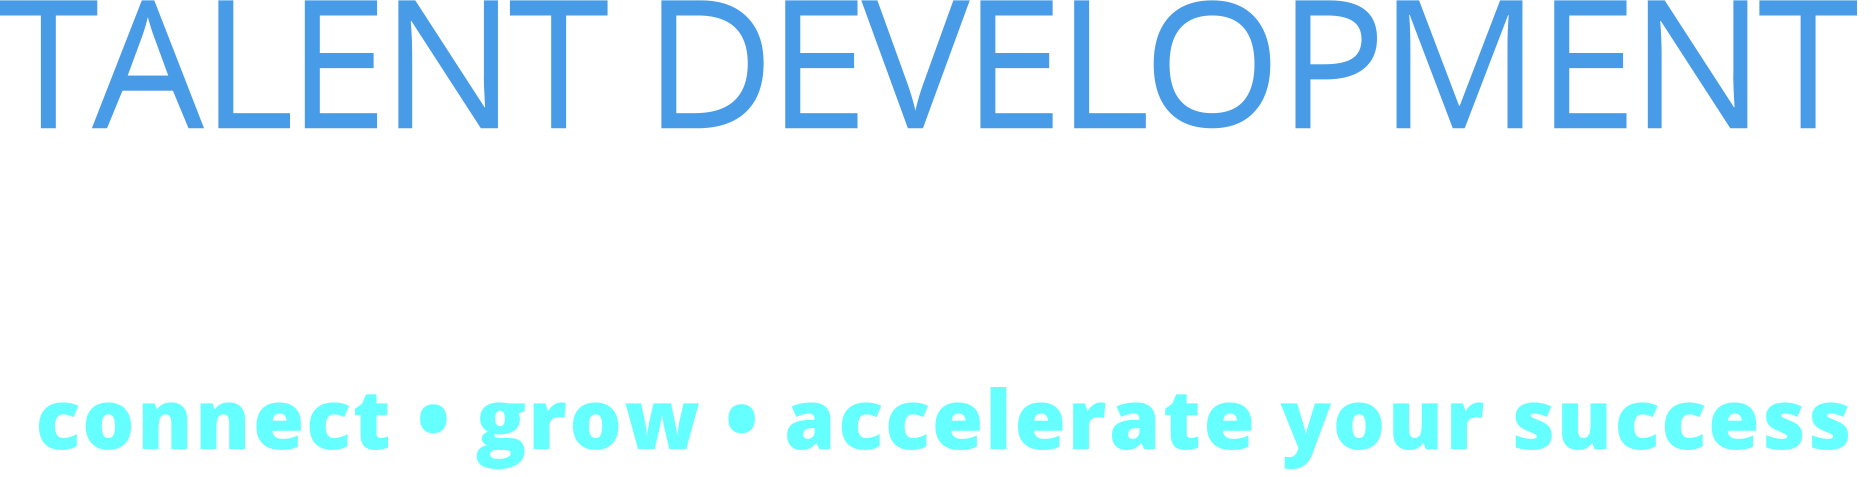 Talent Development Think Tank - connect, grow, accelerate your career